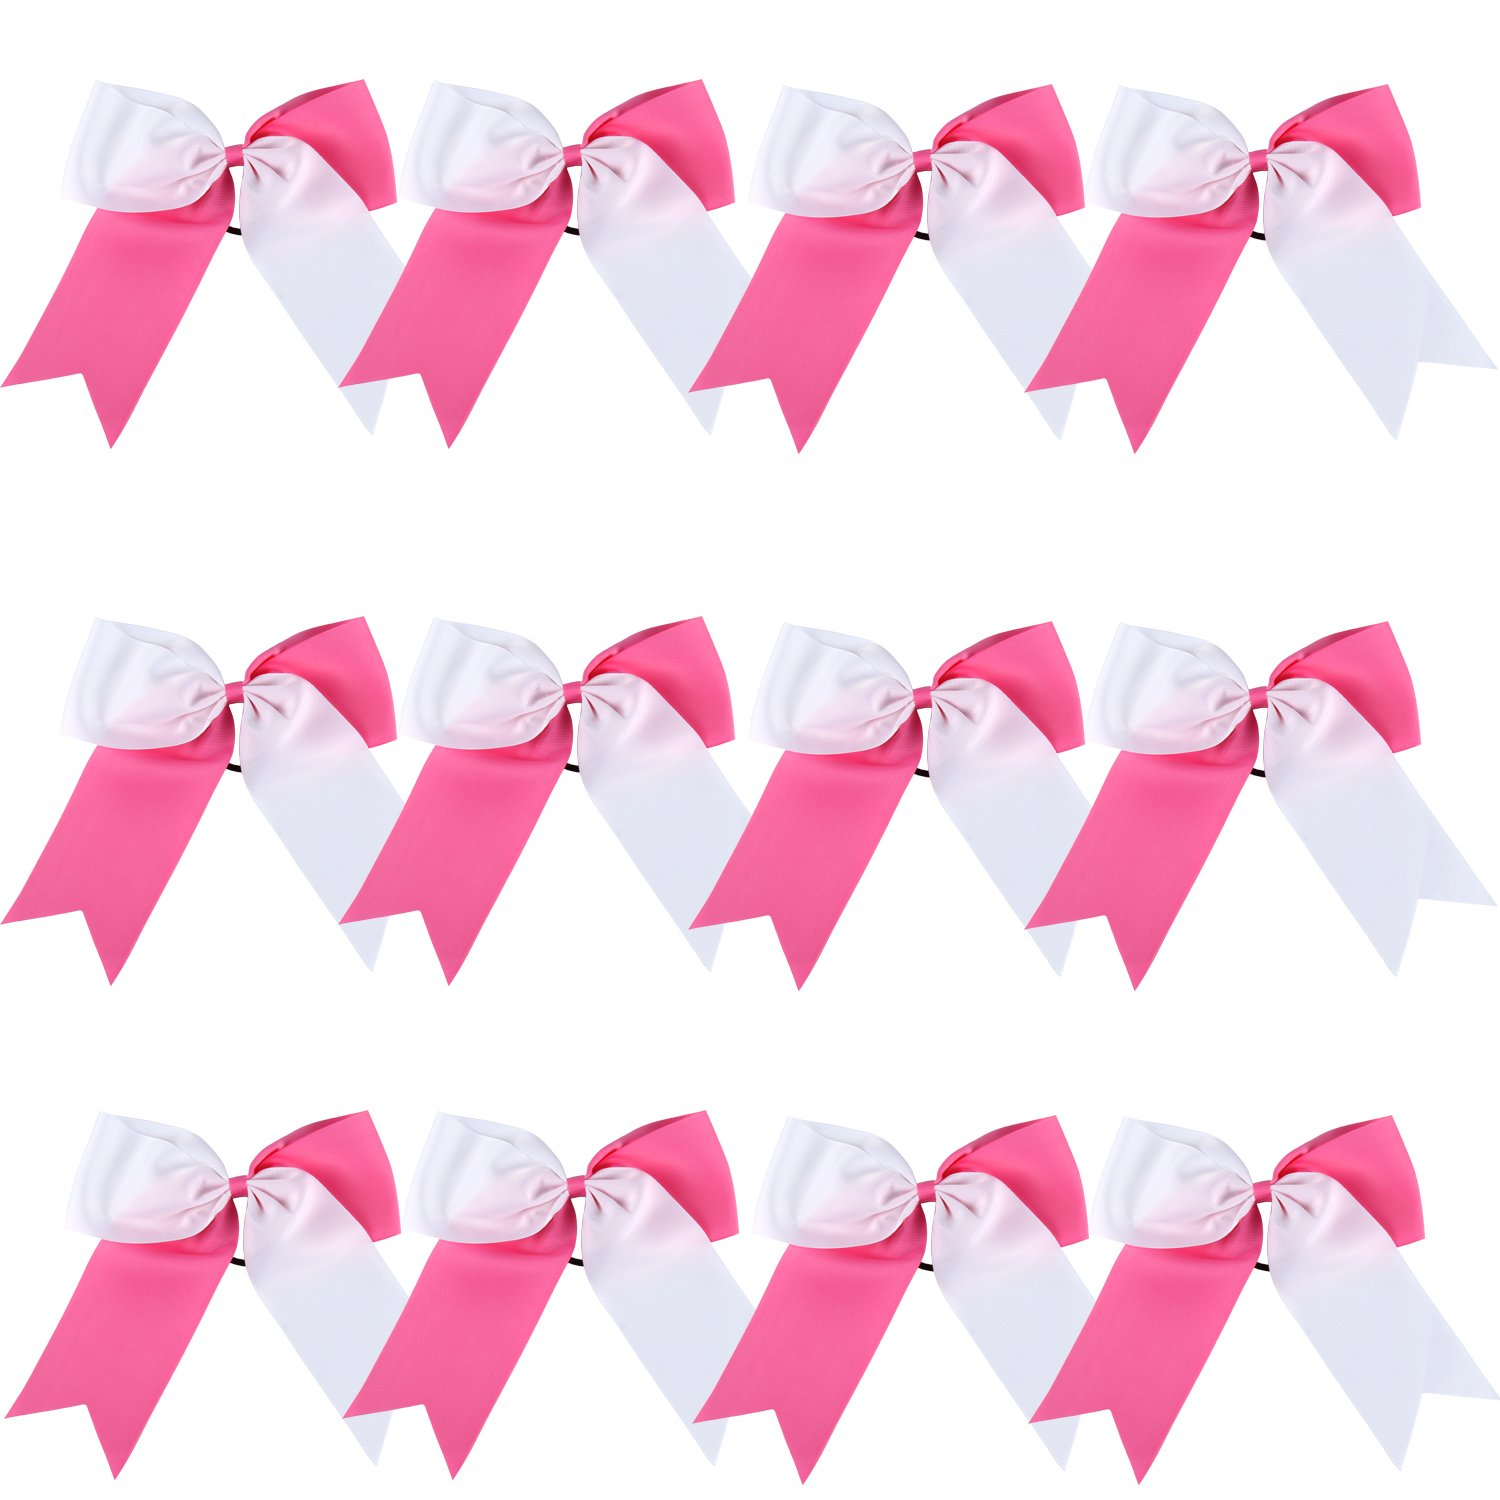 hot pink red 8 white soccer hair bow lot of 6 green soccer hair bows 12 hair bow wholesale soccer bow lot 10 blue purple orange